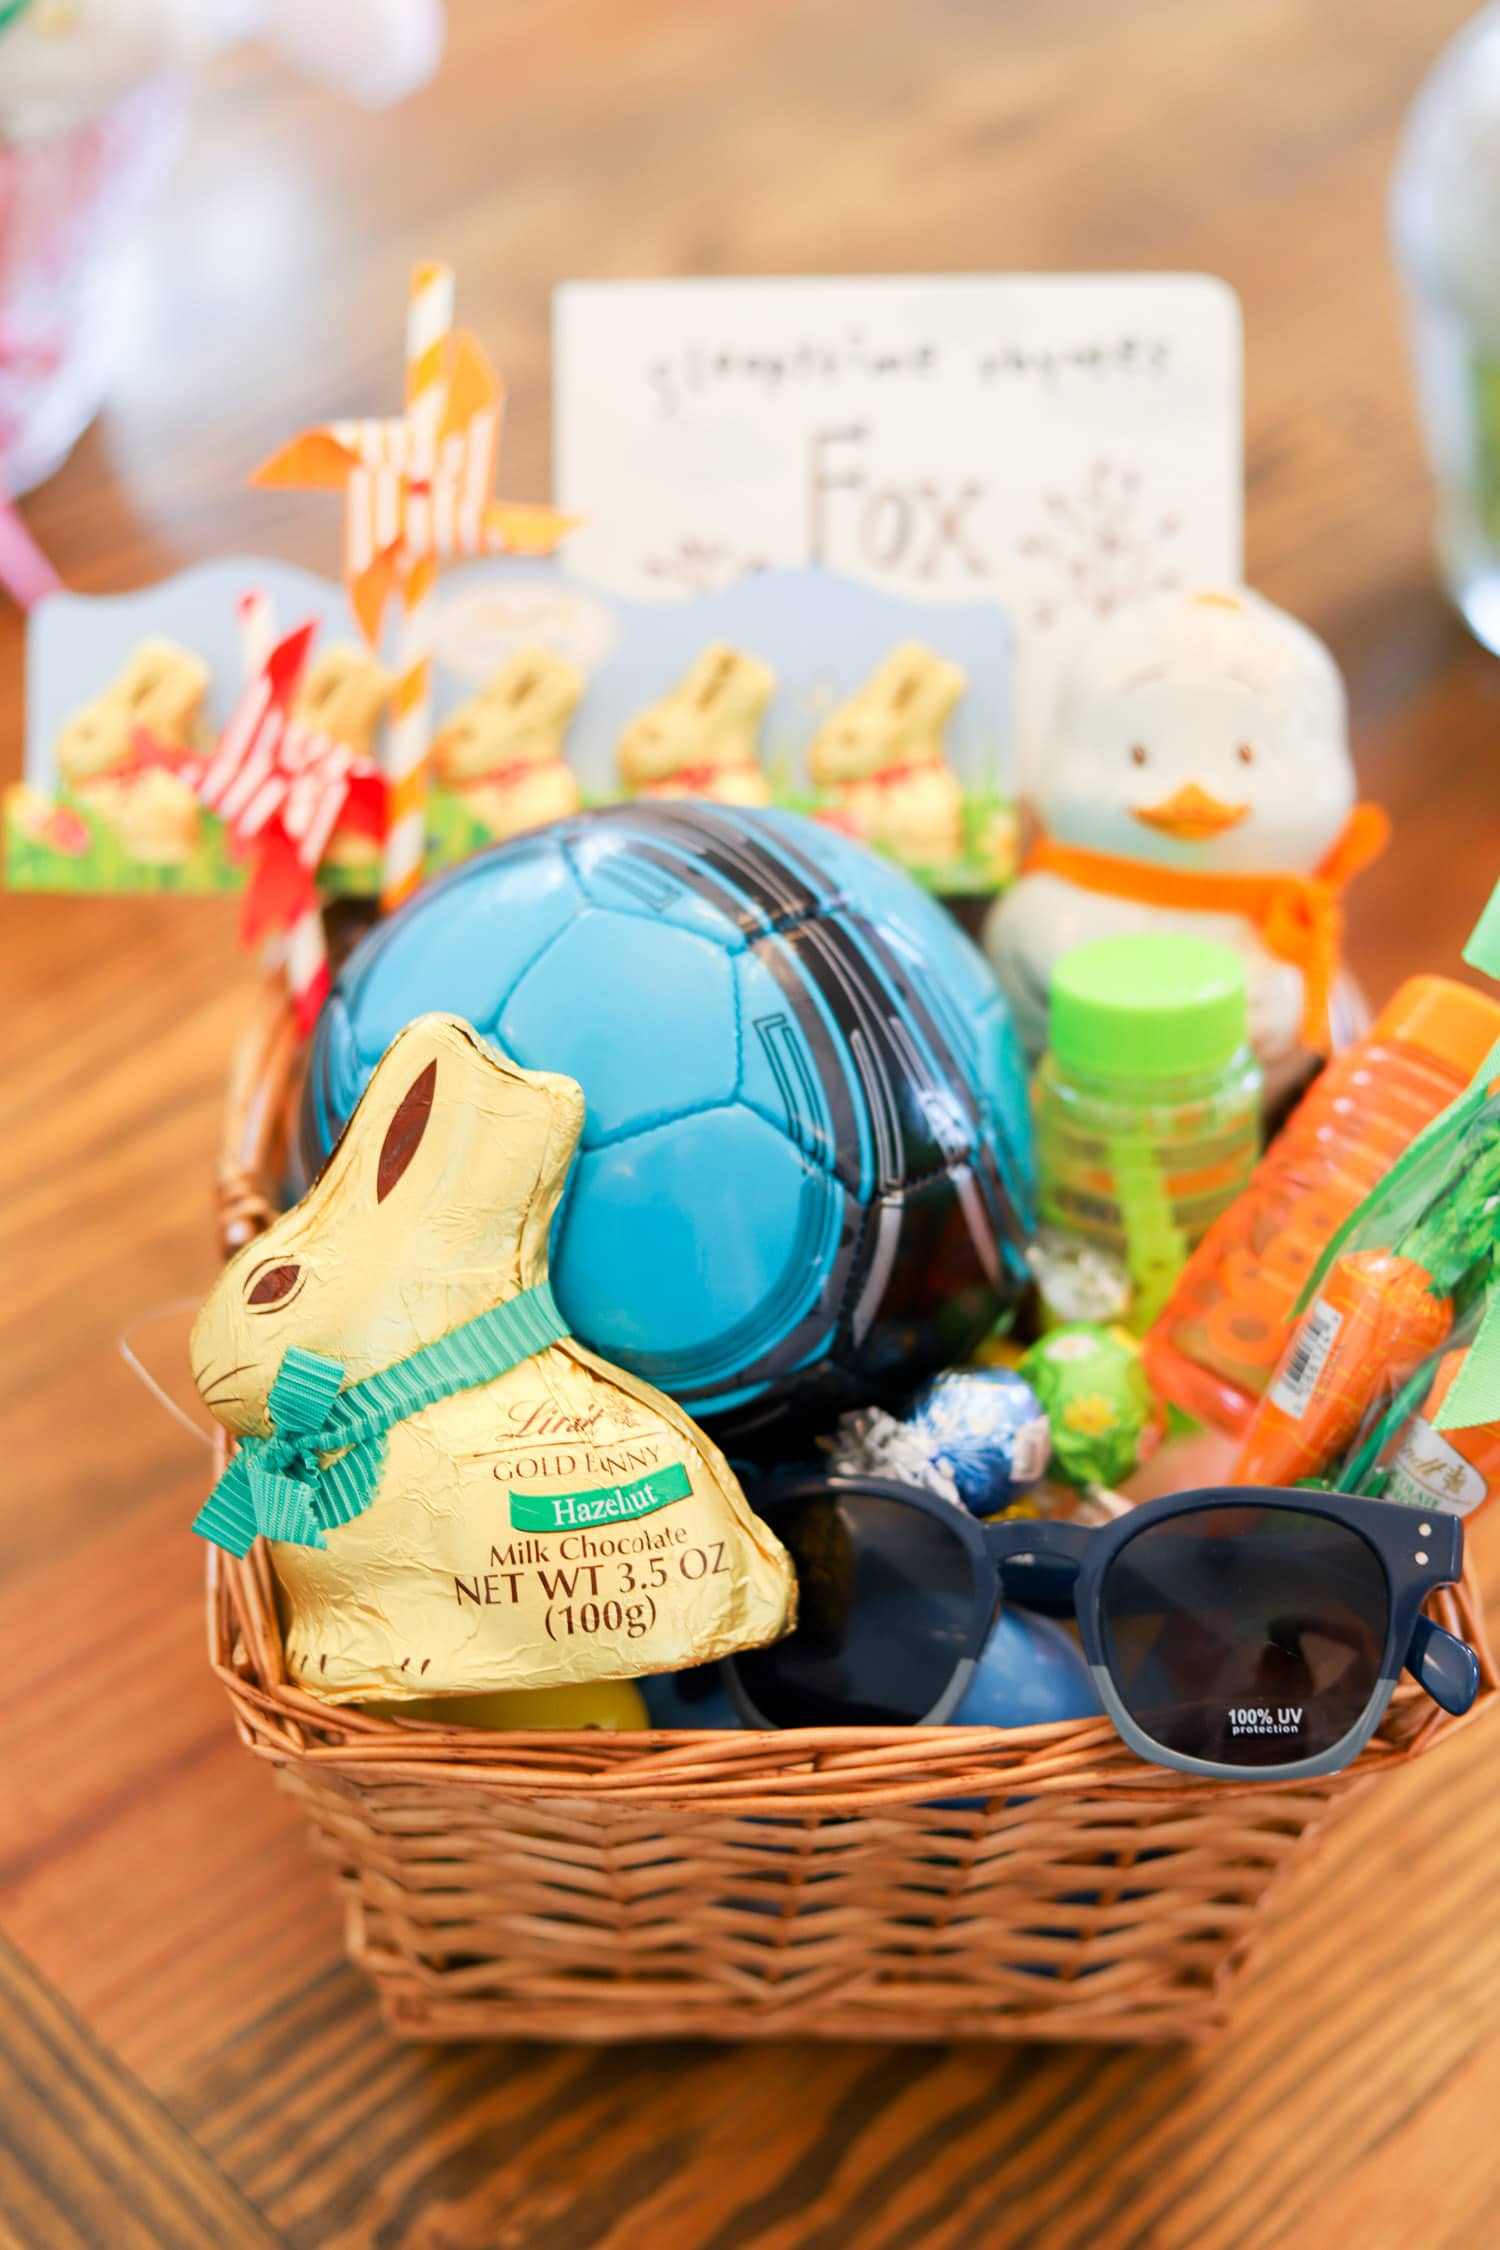 Cute easter basket ideas party favors ashley brooke nicholas cute easter party ideas lindt gold bunny easter negle Images